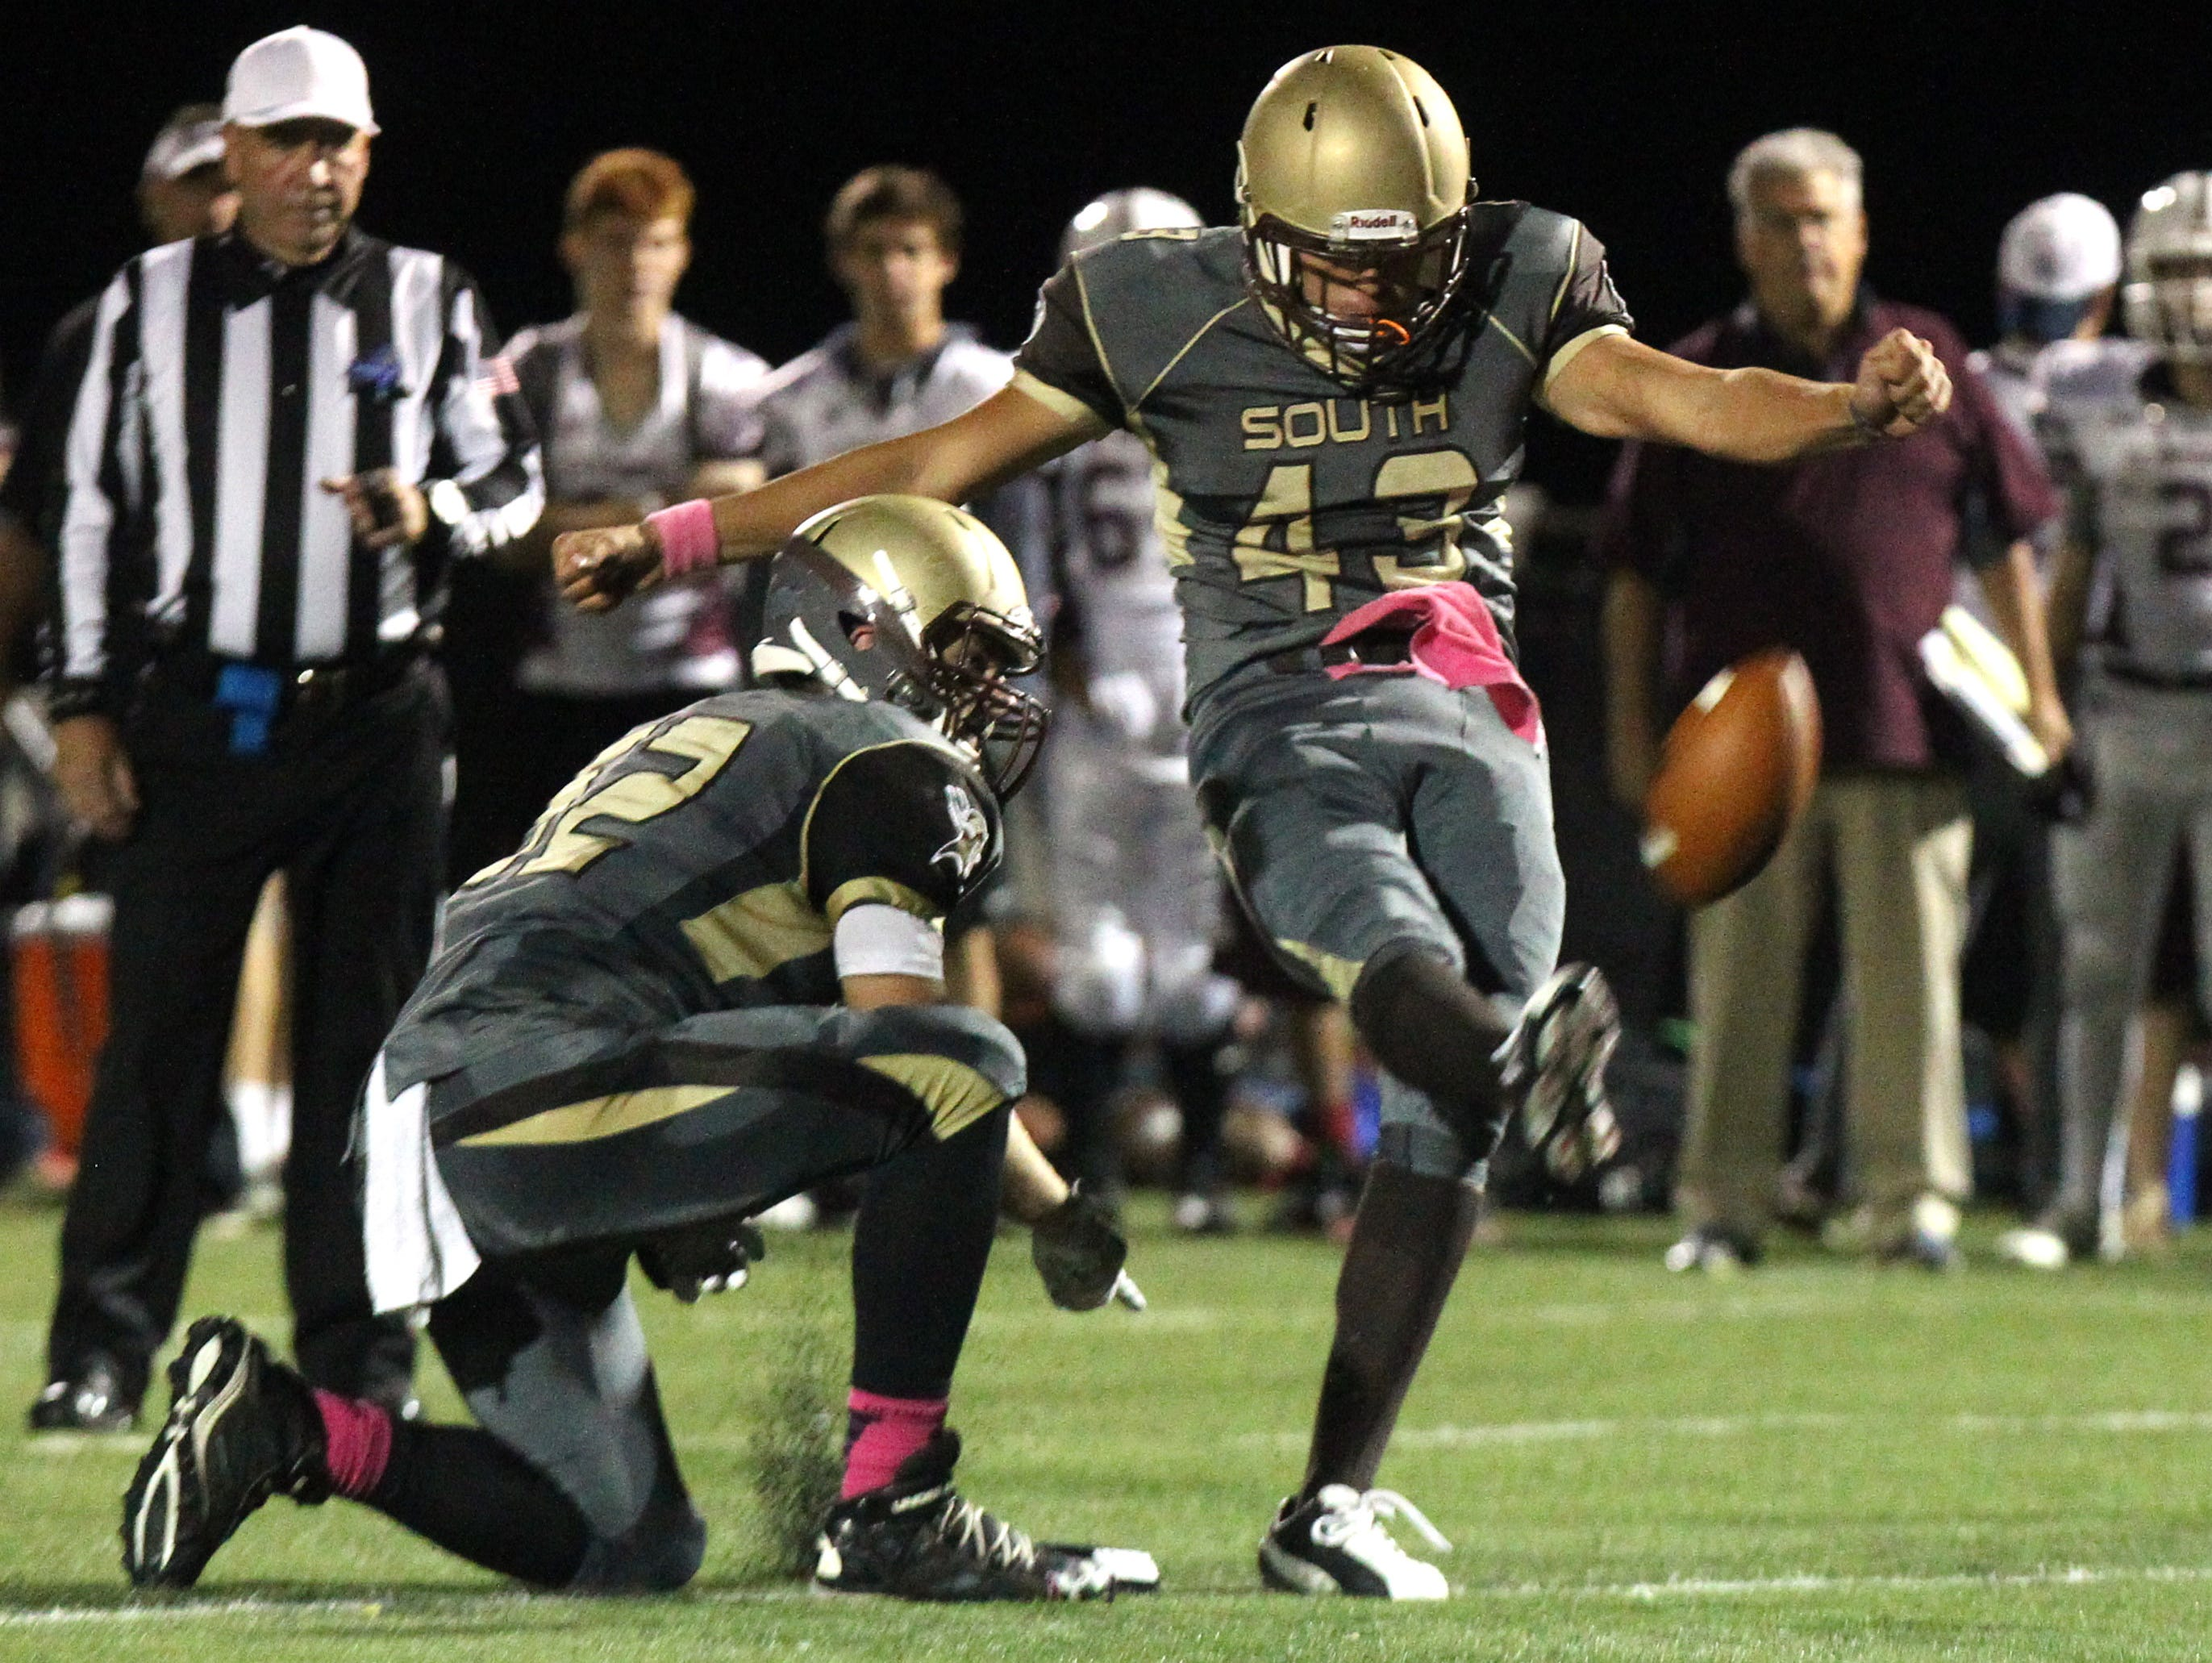 Clarkstown South's Michael Tagaris kicks a field goal during Friday night's game against Scarsdale at Clarkstown South.